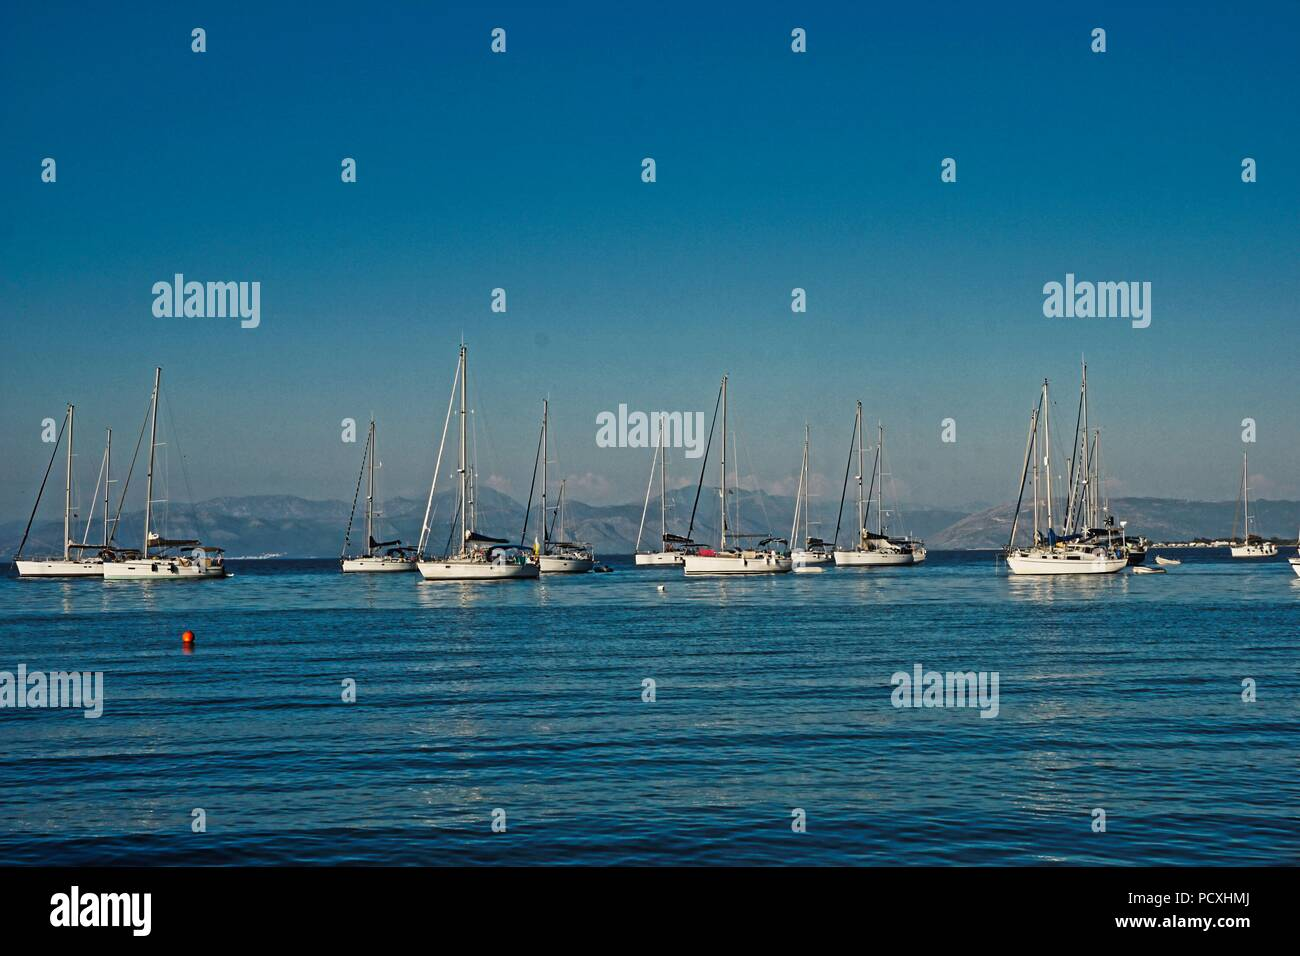 Sailing yachts at anchor in the Greek Islands - Stock Image